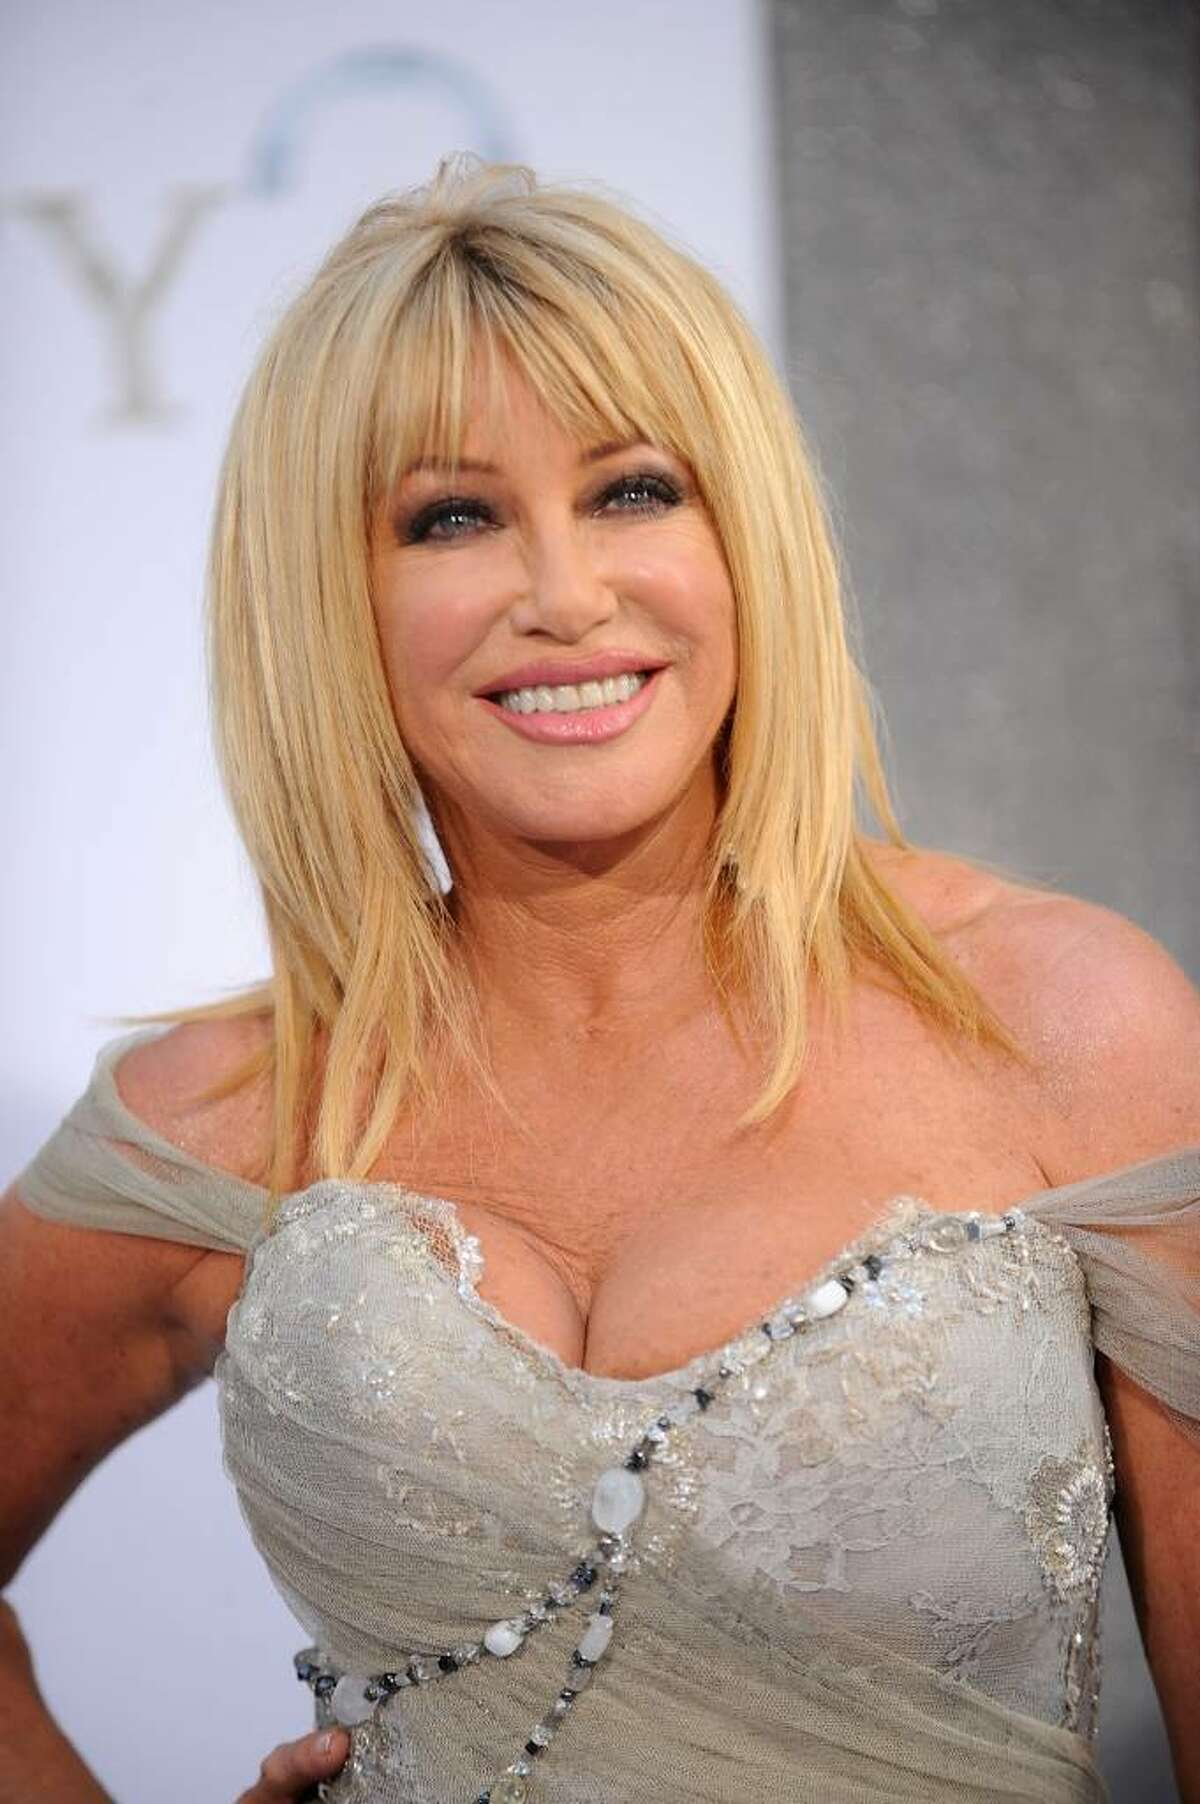 Suzanne Somers helped sales by becoming the face of the Thighmaster in the 90s. The beauty of the product was that you could stay on your couch and use it. - worthly.com